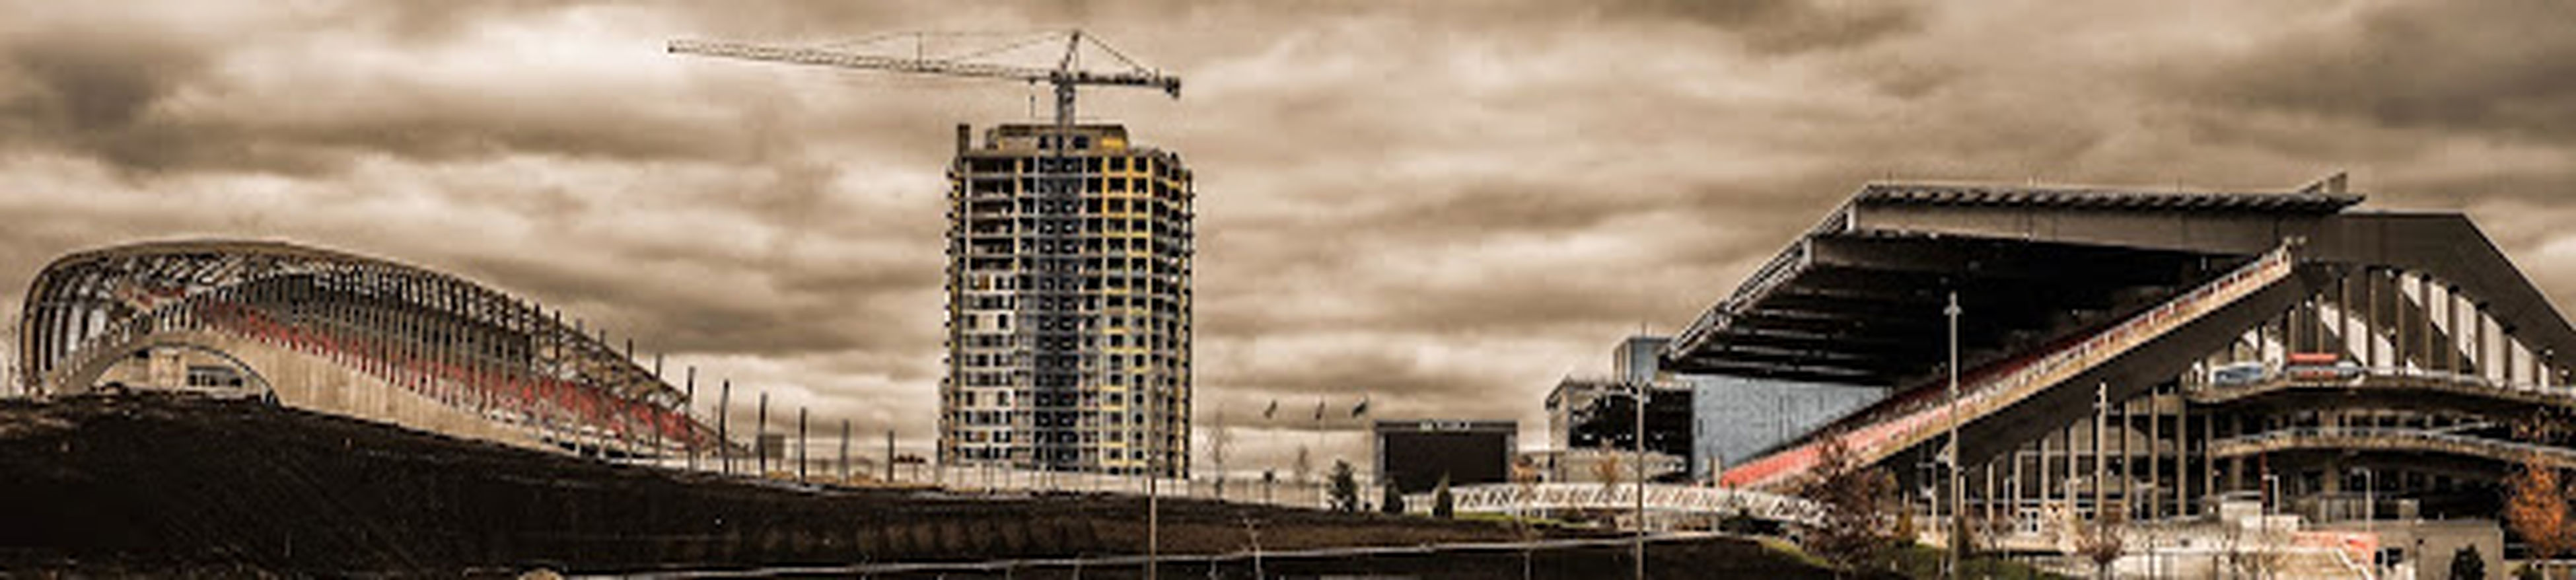 building exterior, architecture, built structure, crane - construction machinery, sky, construction site, development, city, cloud - sky, cloudy, industry, transportation, low angle view, construction, mode of transport, crane, construction industry, building, outdoors, day